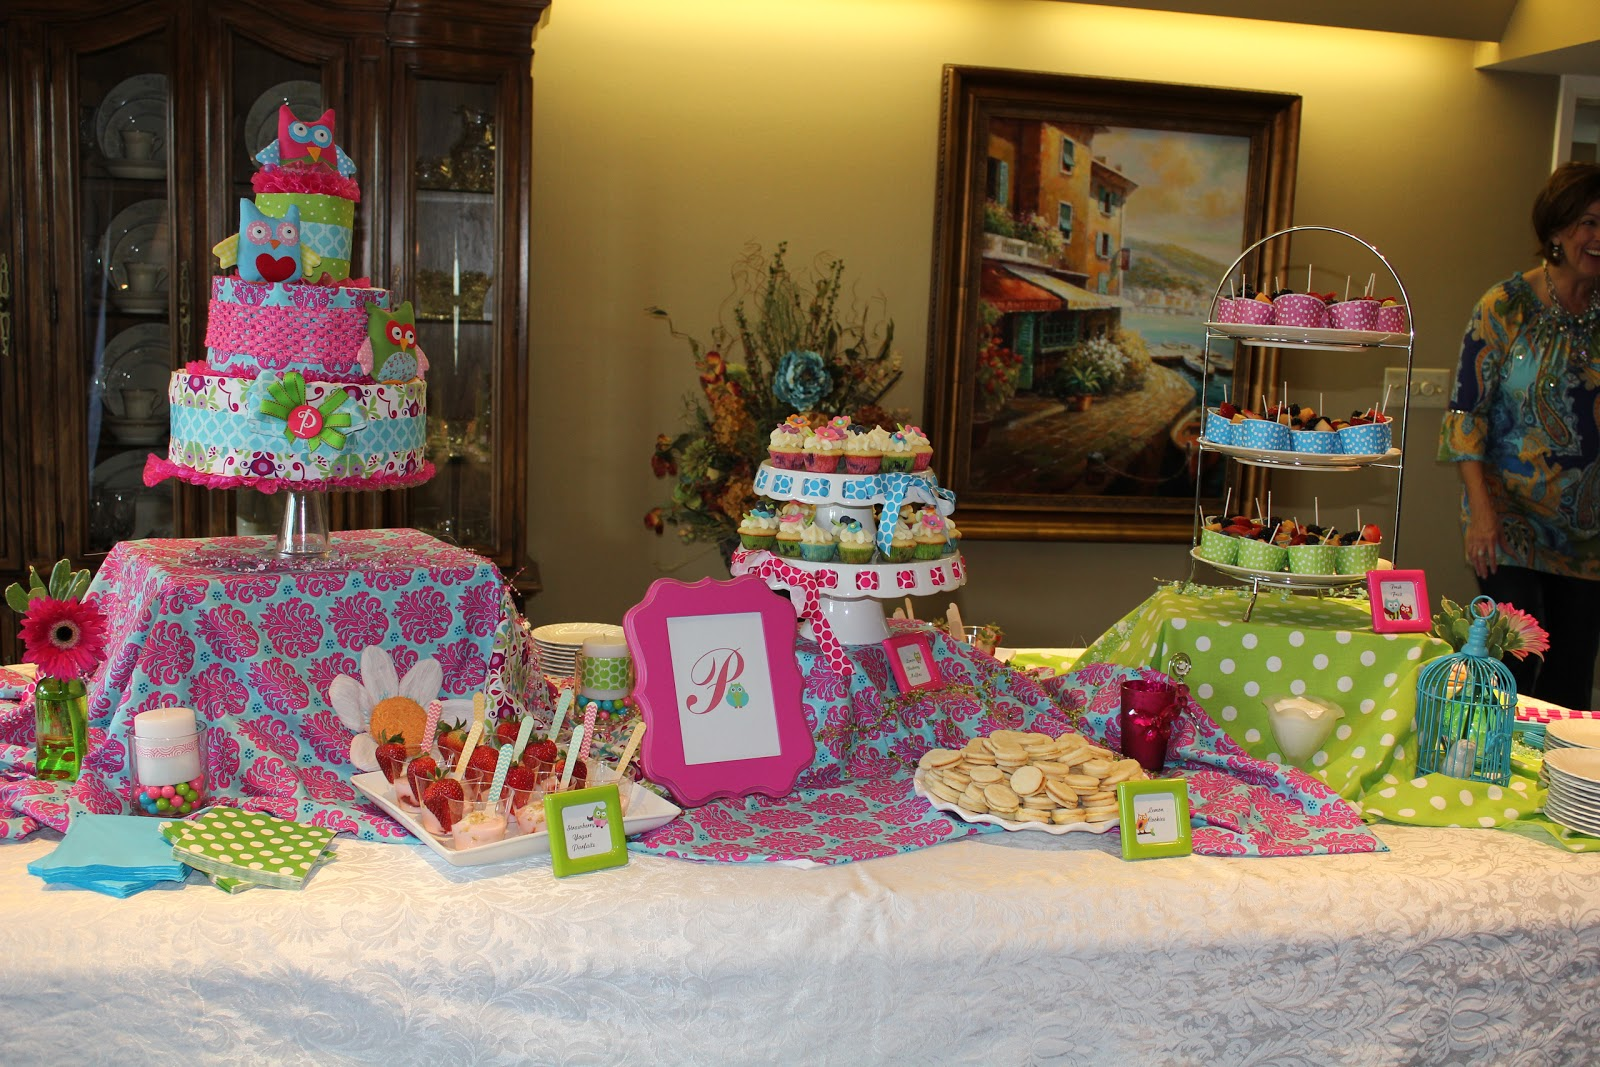 this was a baby shower for a sweet girl who had the cutest baby